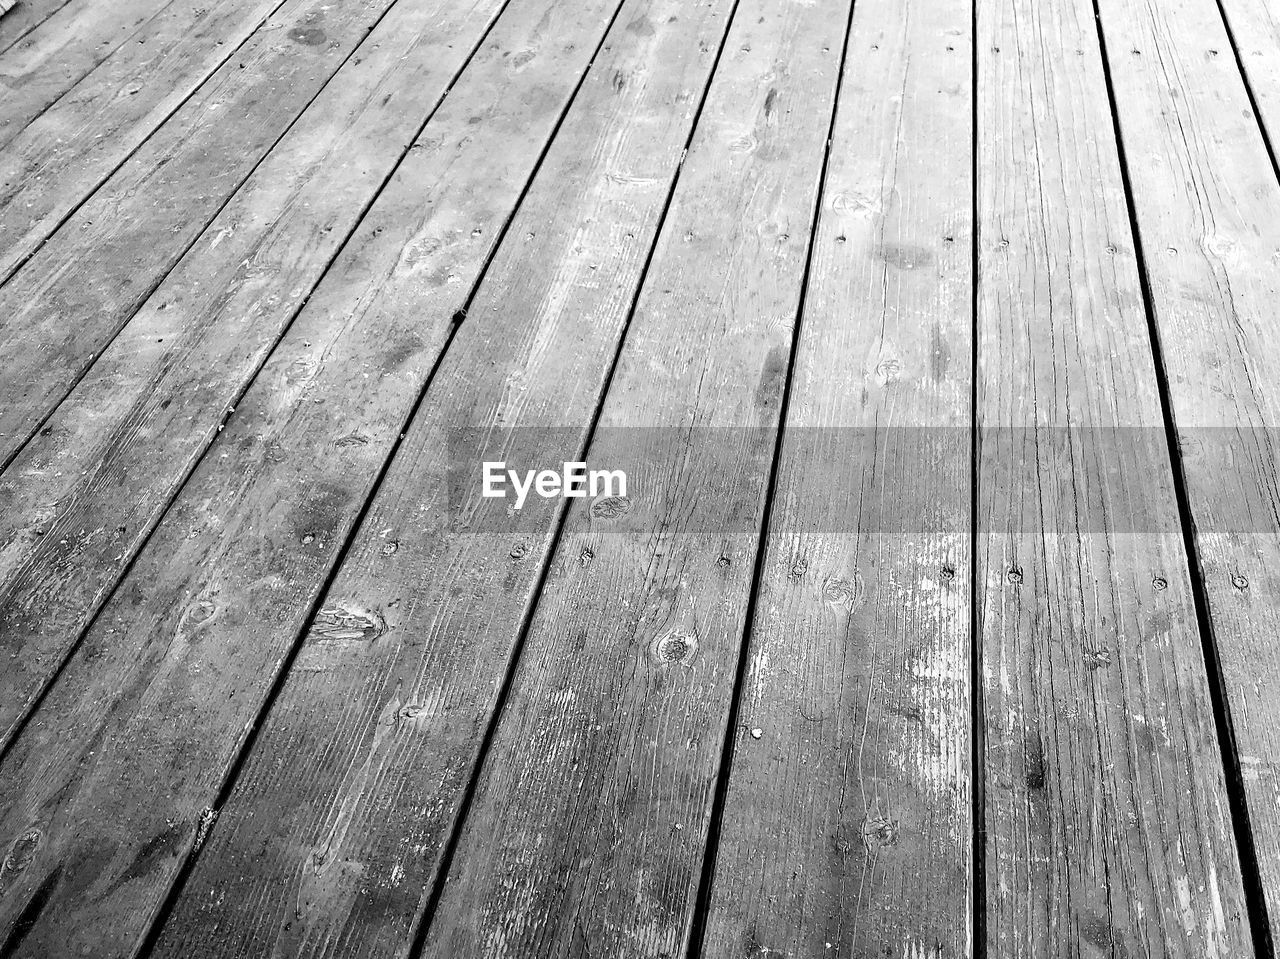 wood - material, pattern, wood, textured, backgrounds, plank, no people, full frame, repetition, flooring, boardwalk, in a row, close-up, old, day, rough, hardwood floor, wood grain, weathered, floorboard, outdoors, wood paneling, abstract, dirty, textured effect, surface level